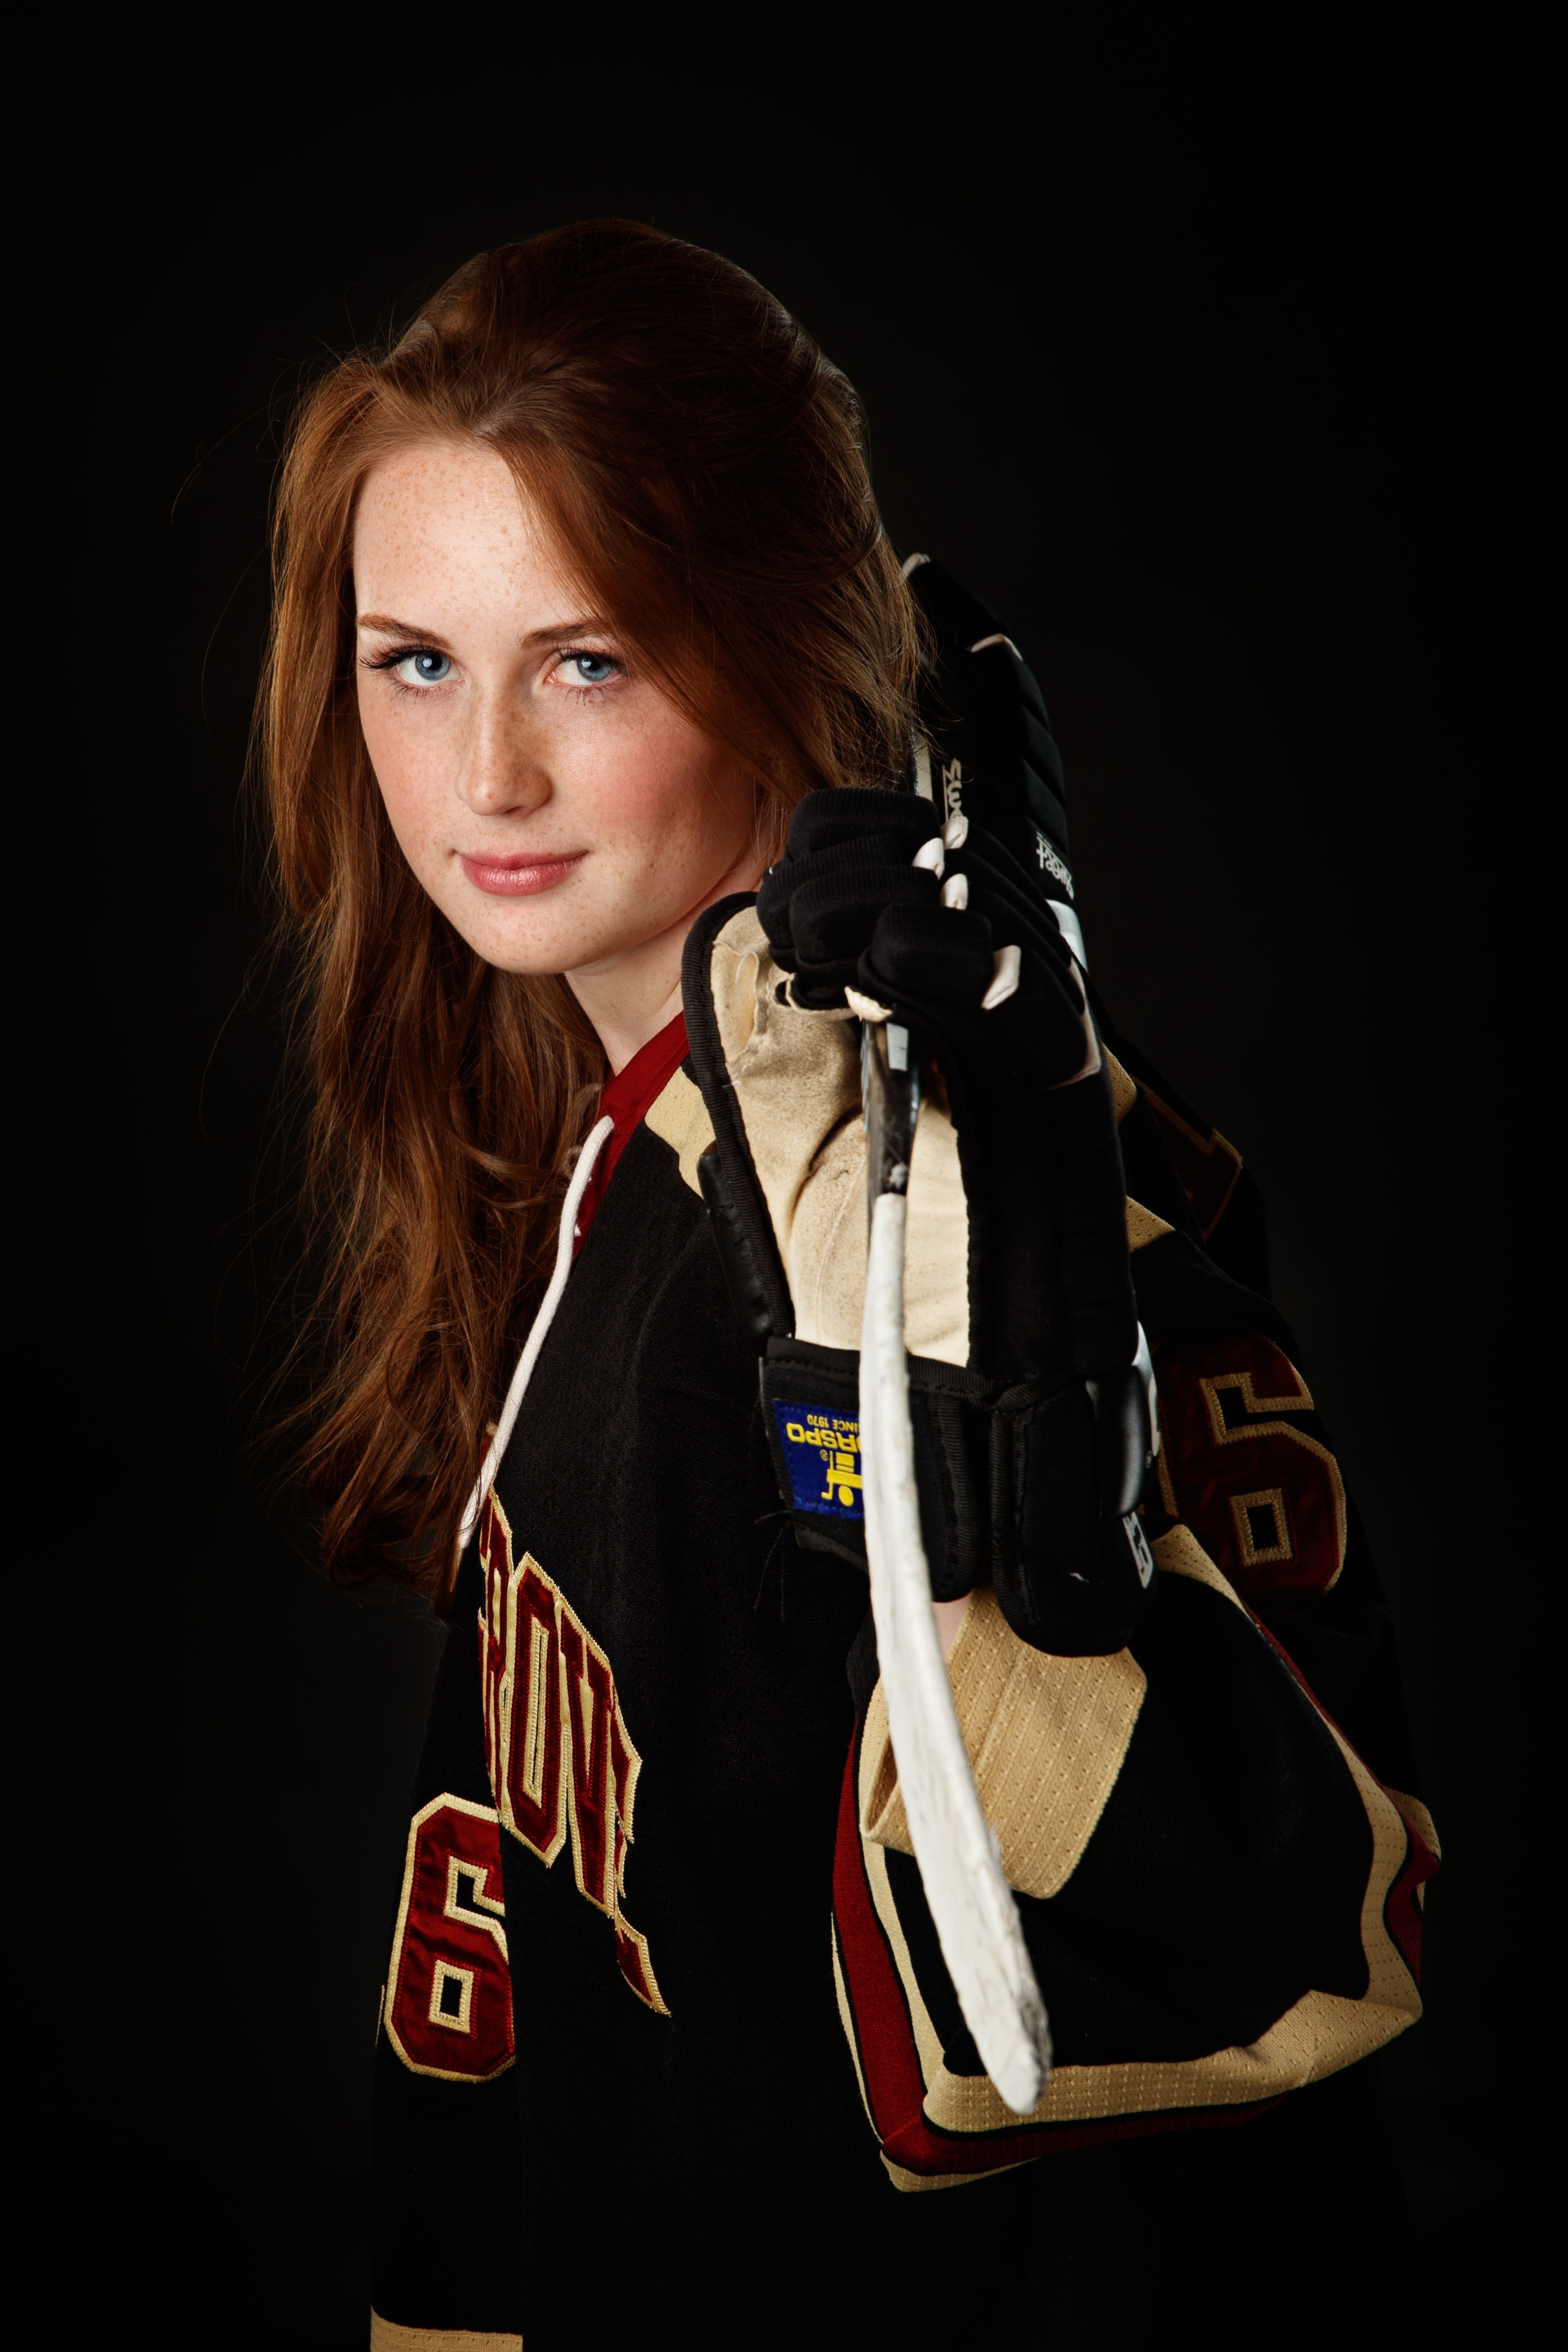 hockey outfit - senior session